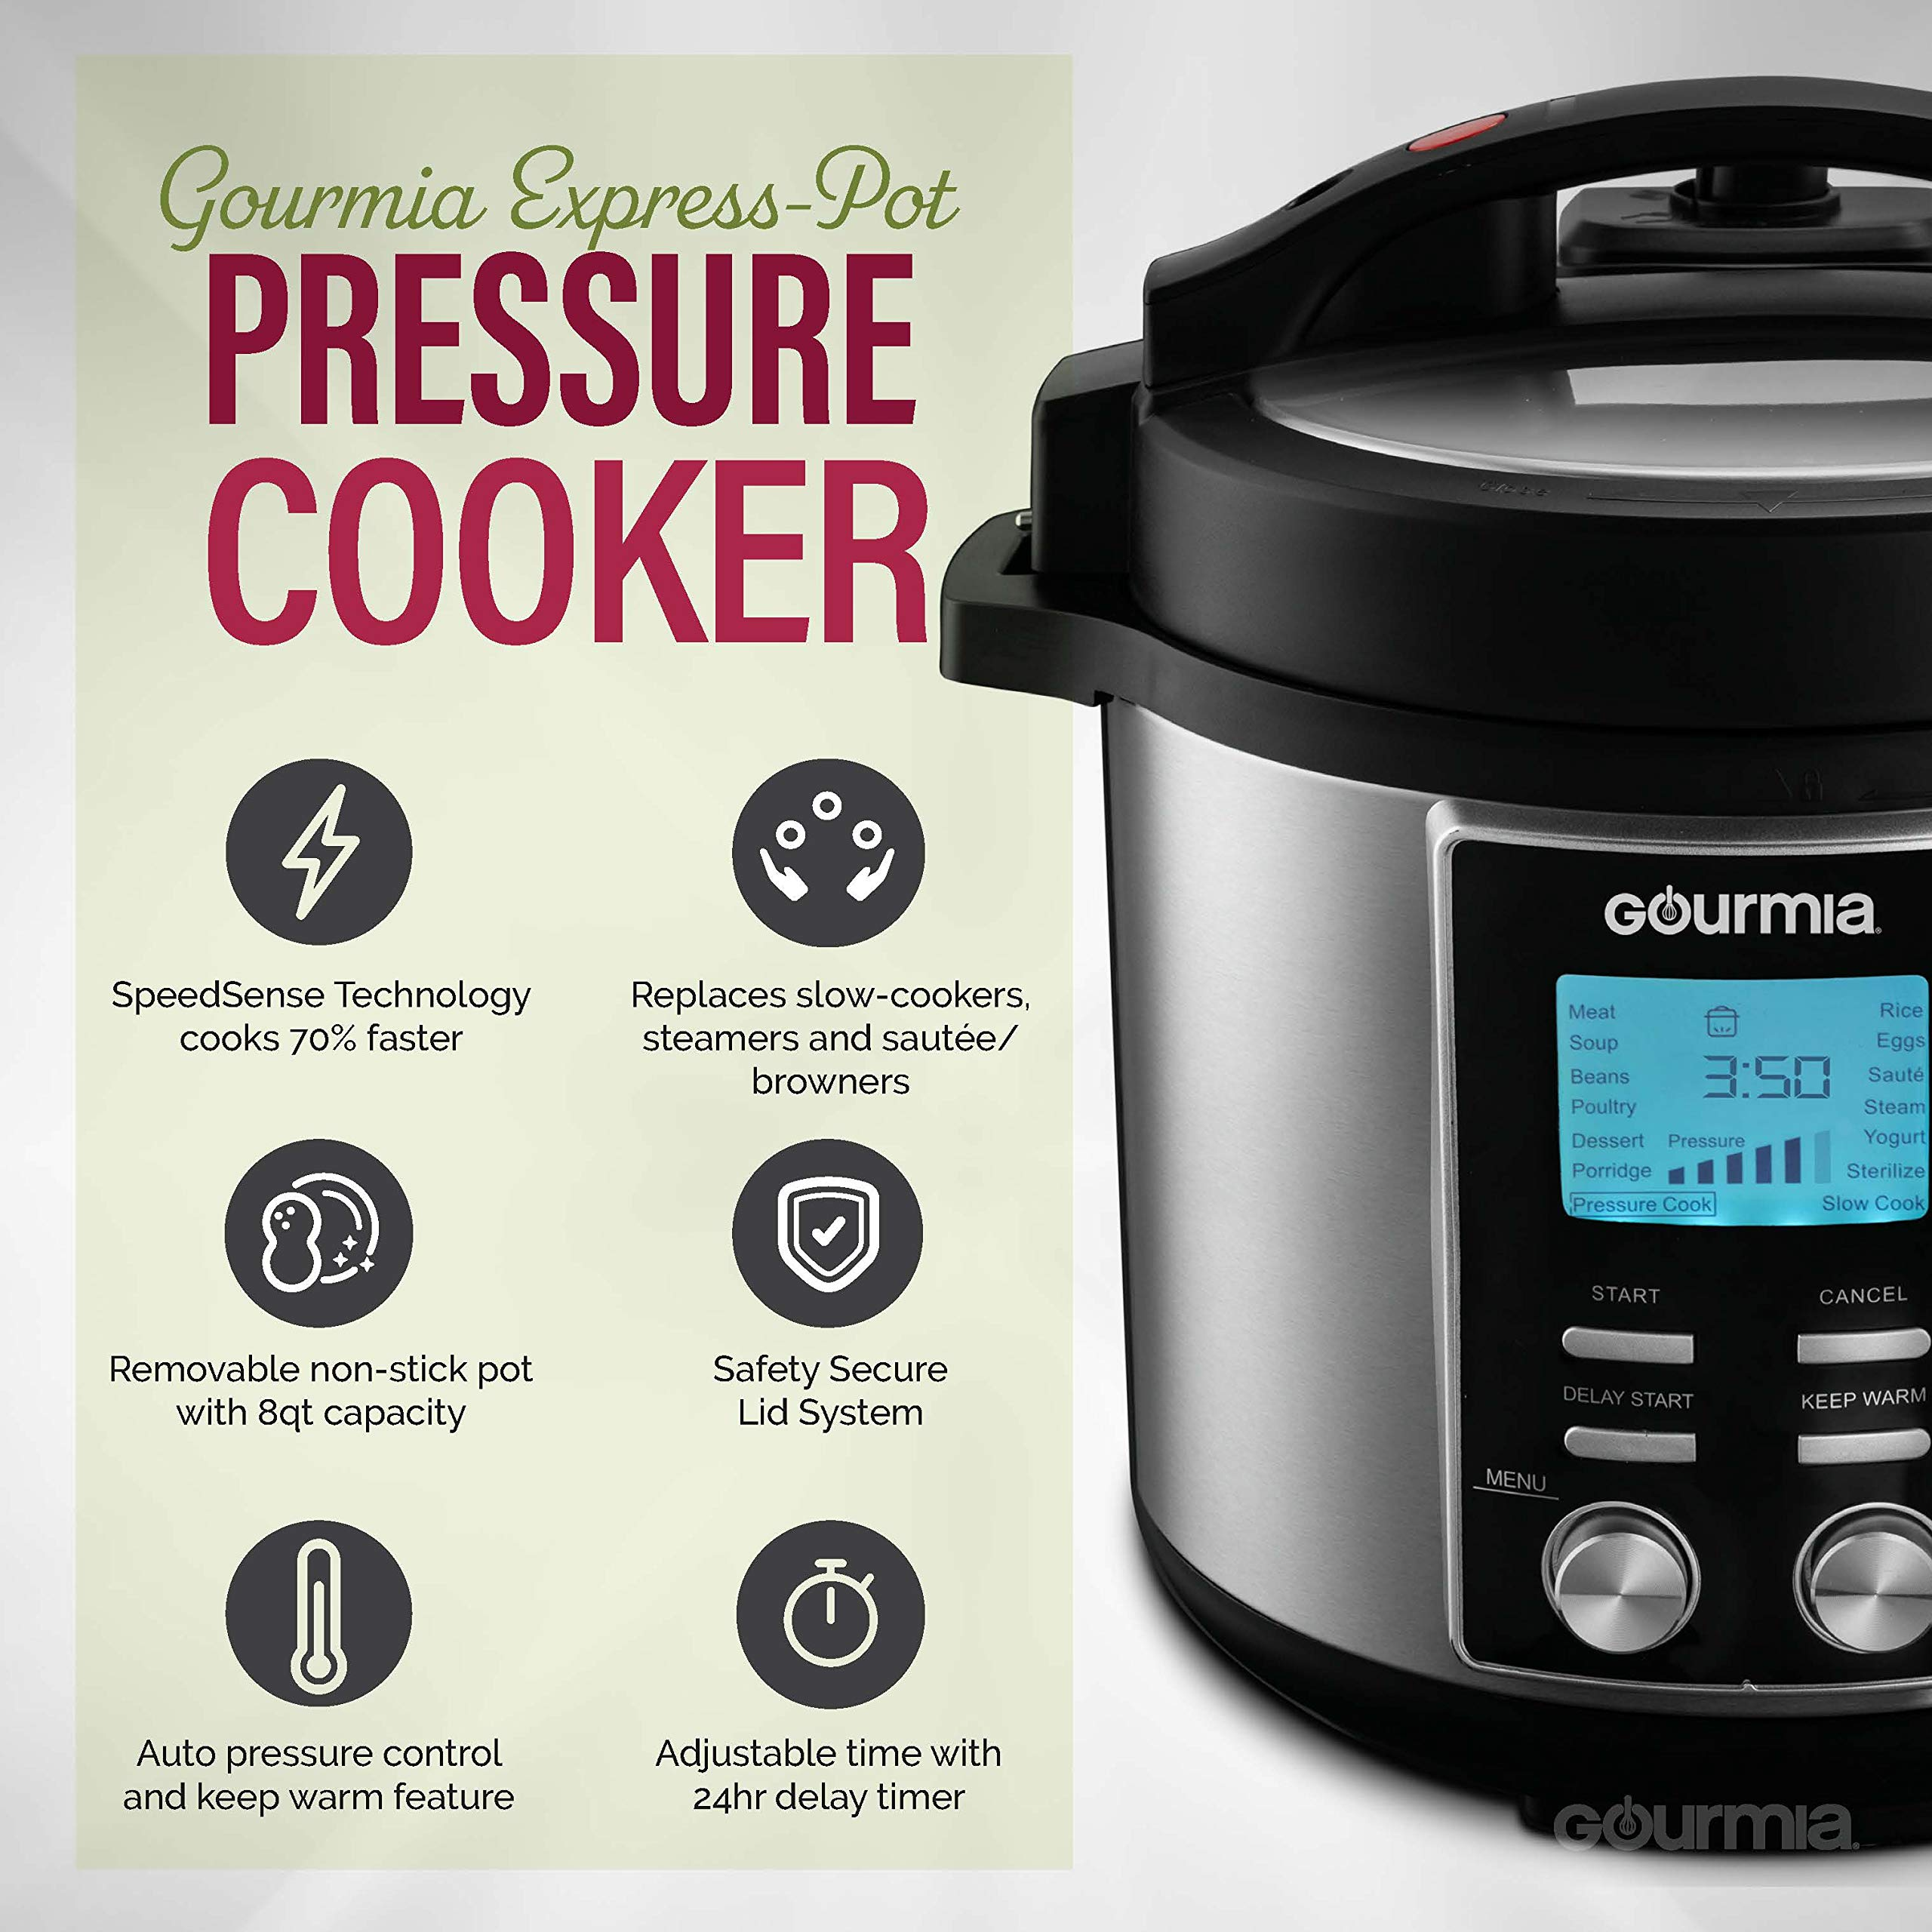 Gourmia GPC855 8 Qt Digital SmartPot Multi-Function Pressure Cooker | 15 Cook Modes | Removable Nonstick Pot | 24-Hour Delay Timer | Automatic Keep Warm | LCD Display | Pressure Sensor Lid Lock by Gourmia (Image #2)